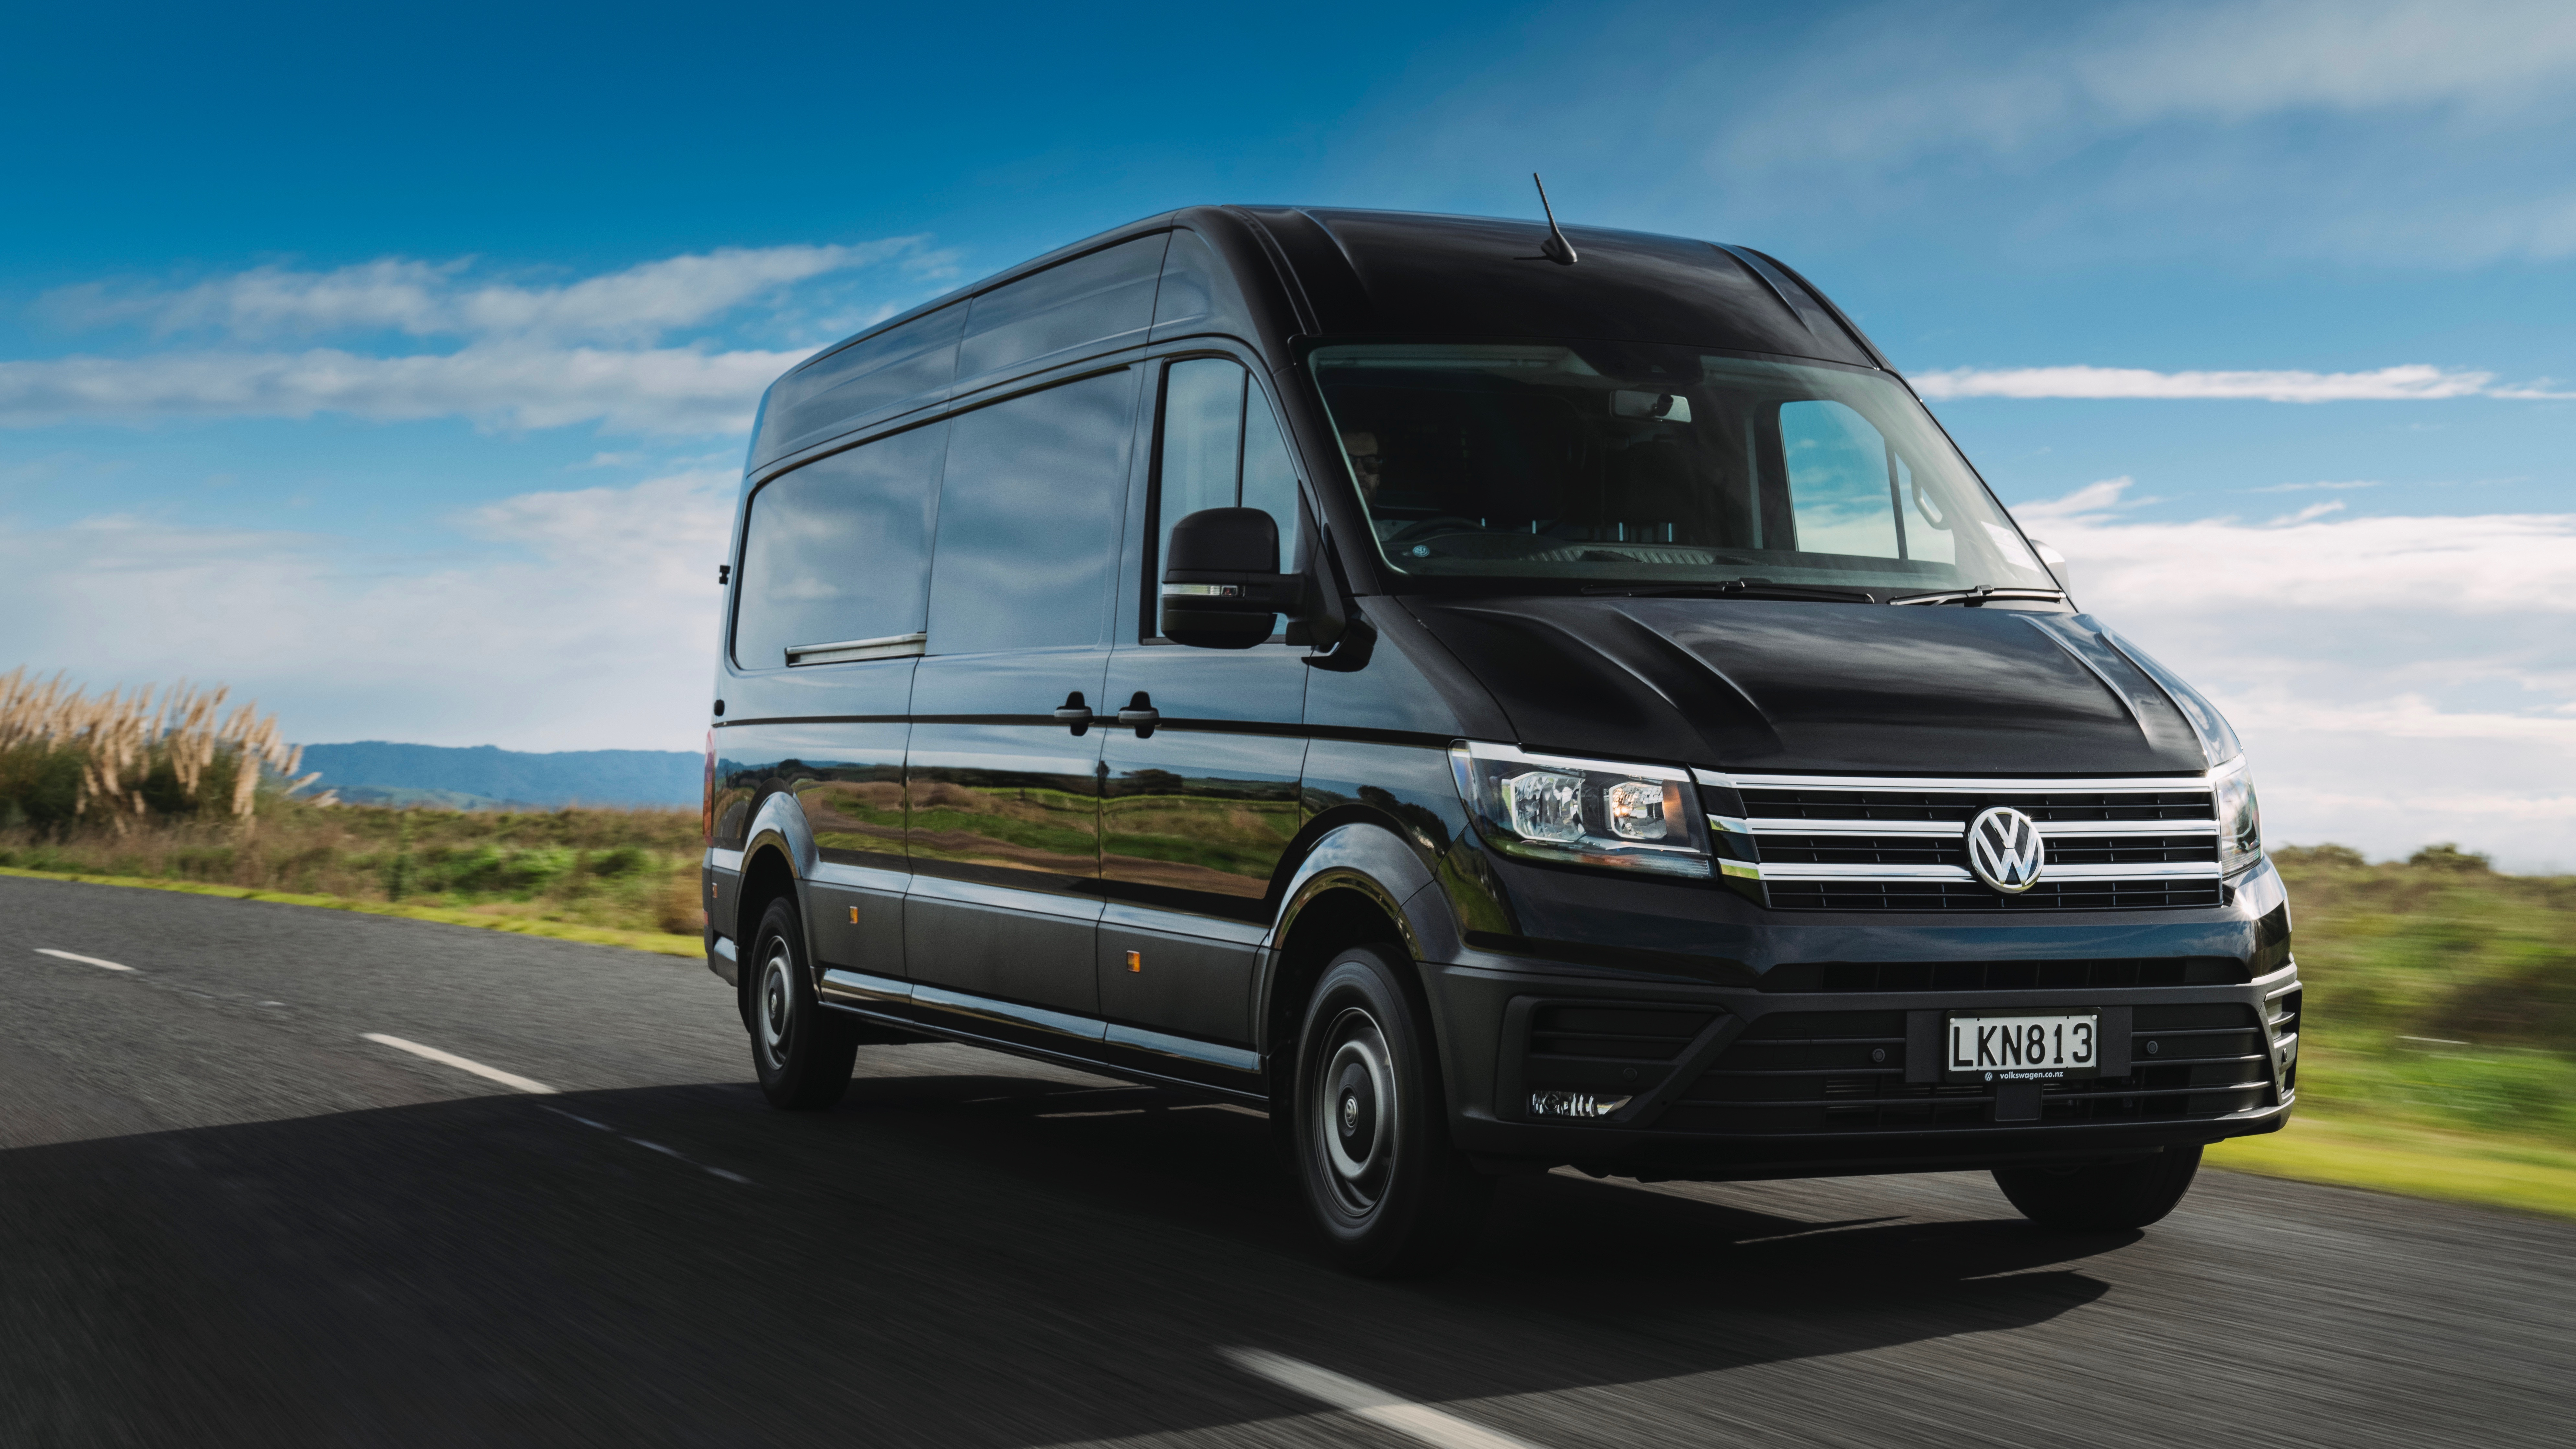 Driven: The all-new Volkswagen Crafter